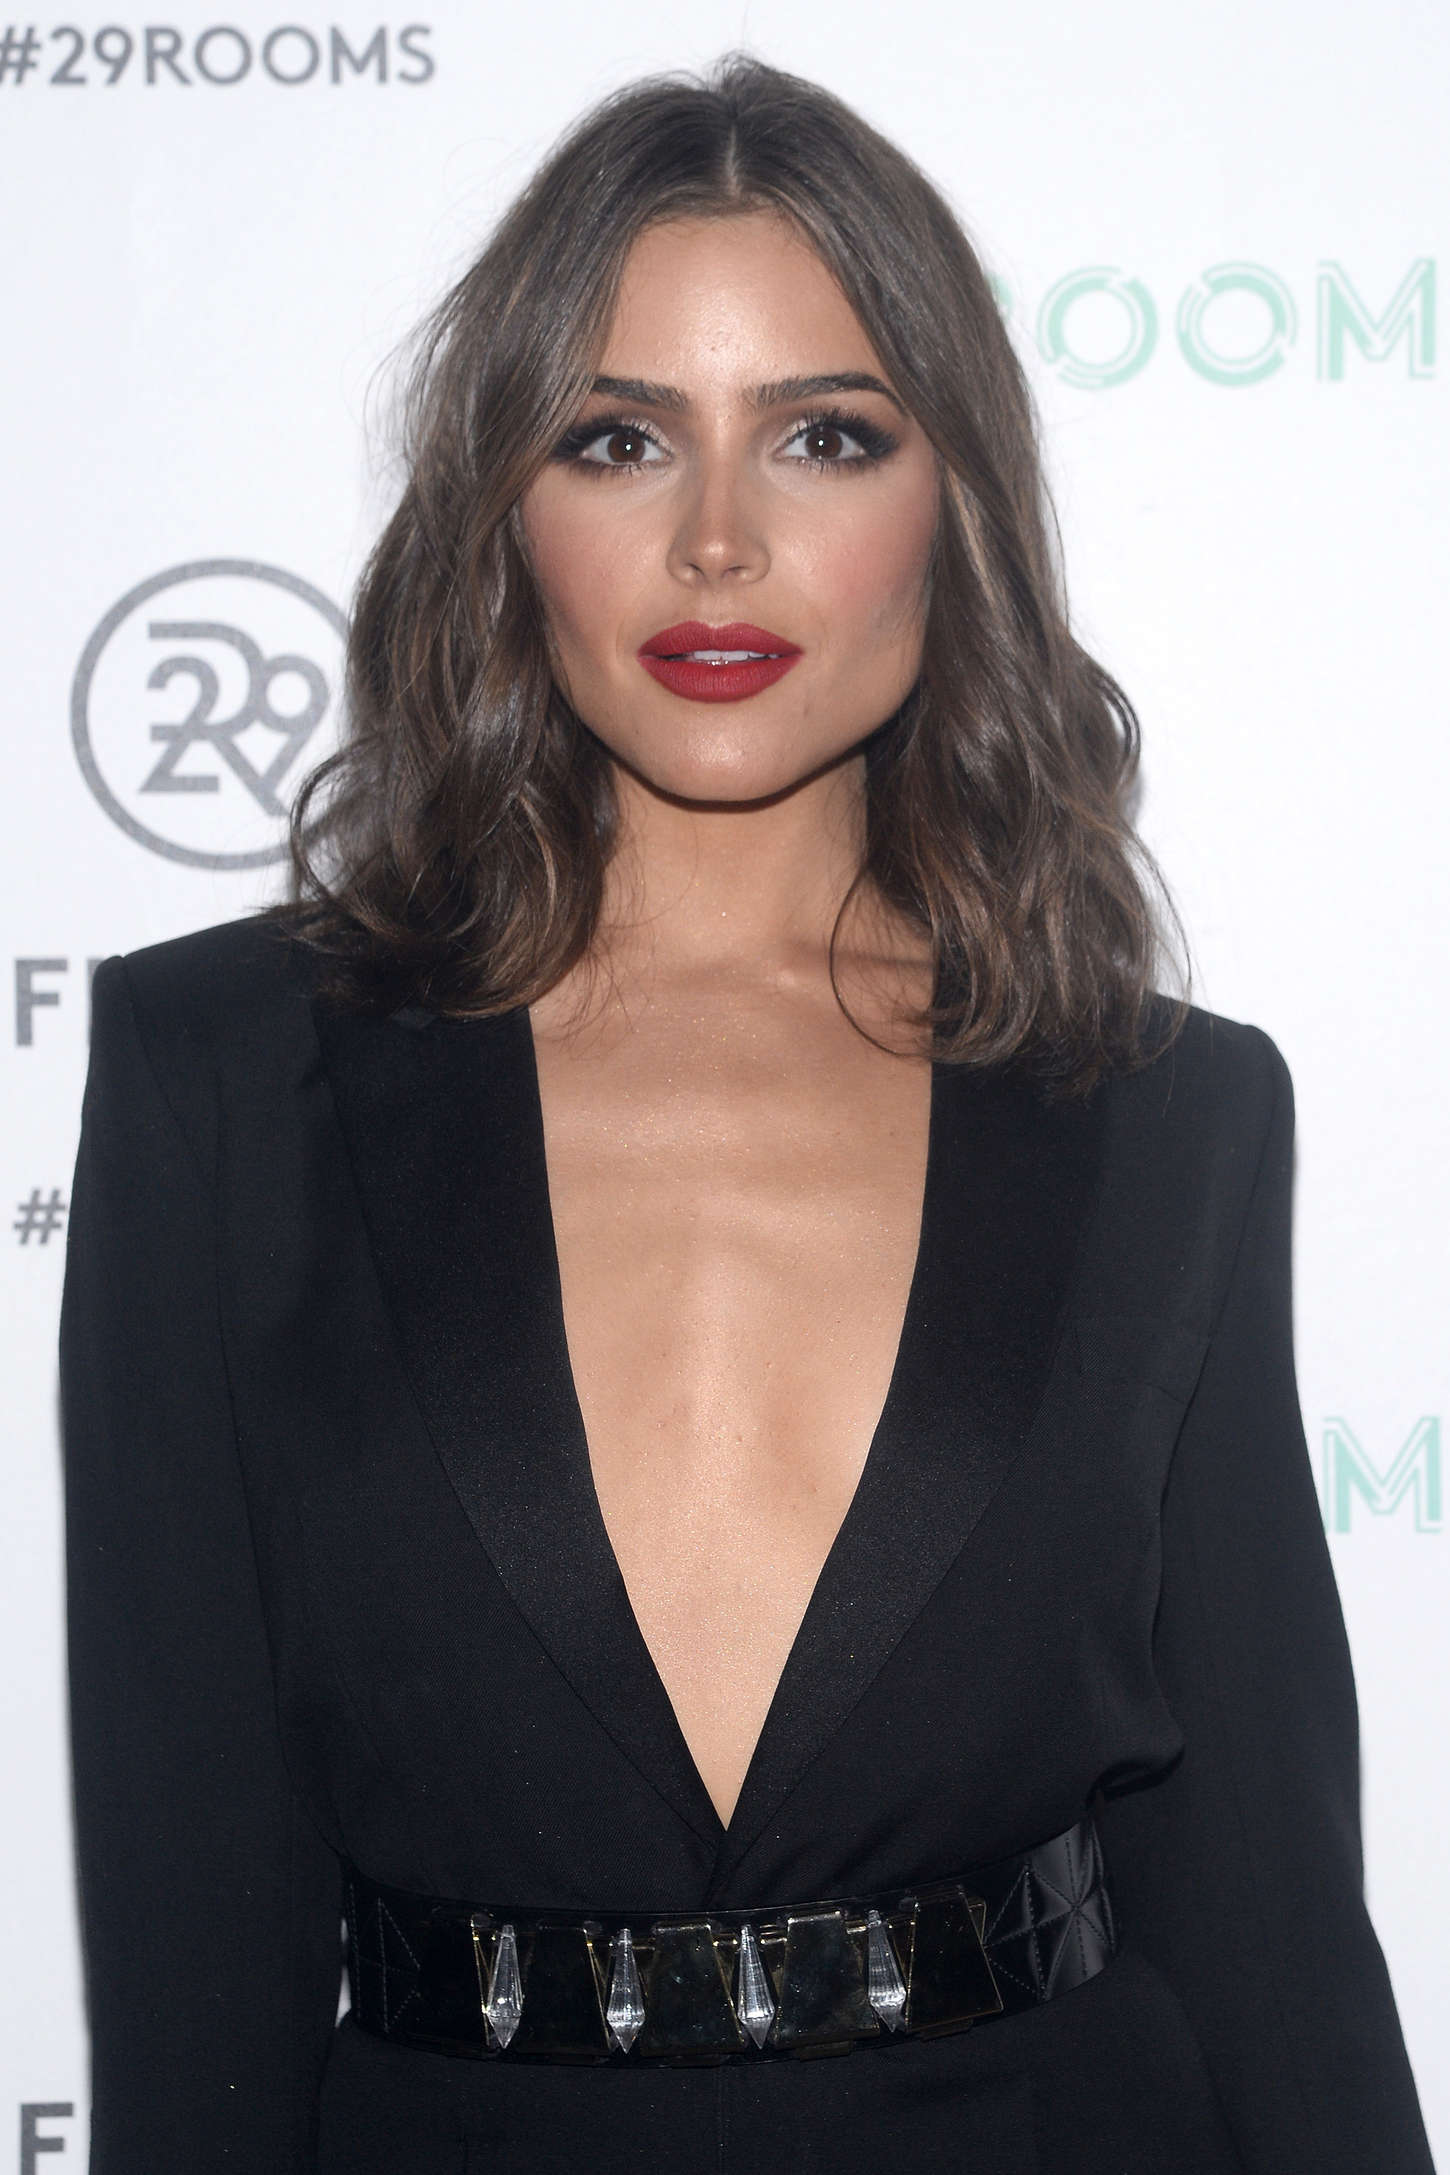 Olivia Culpo 2015 : Olivia Culpo: Refinery29 Presents 29Room -01